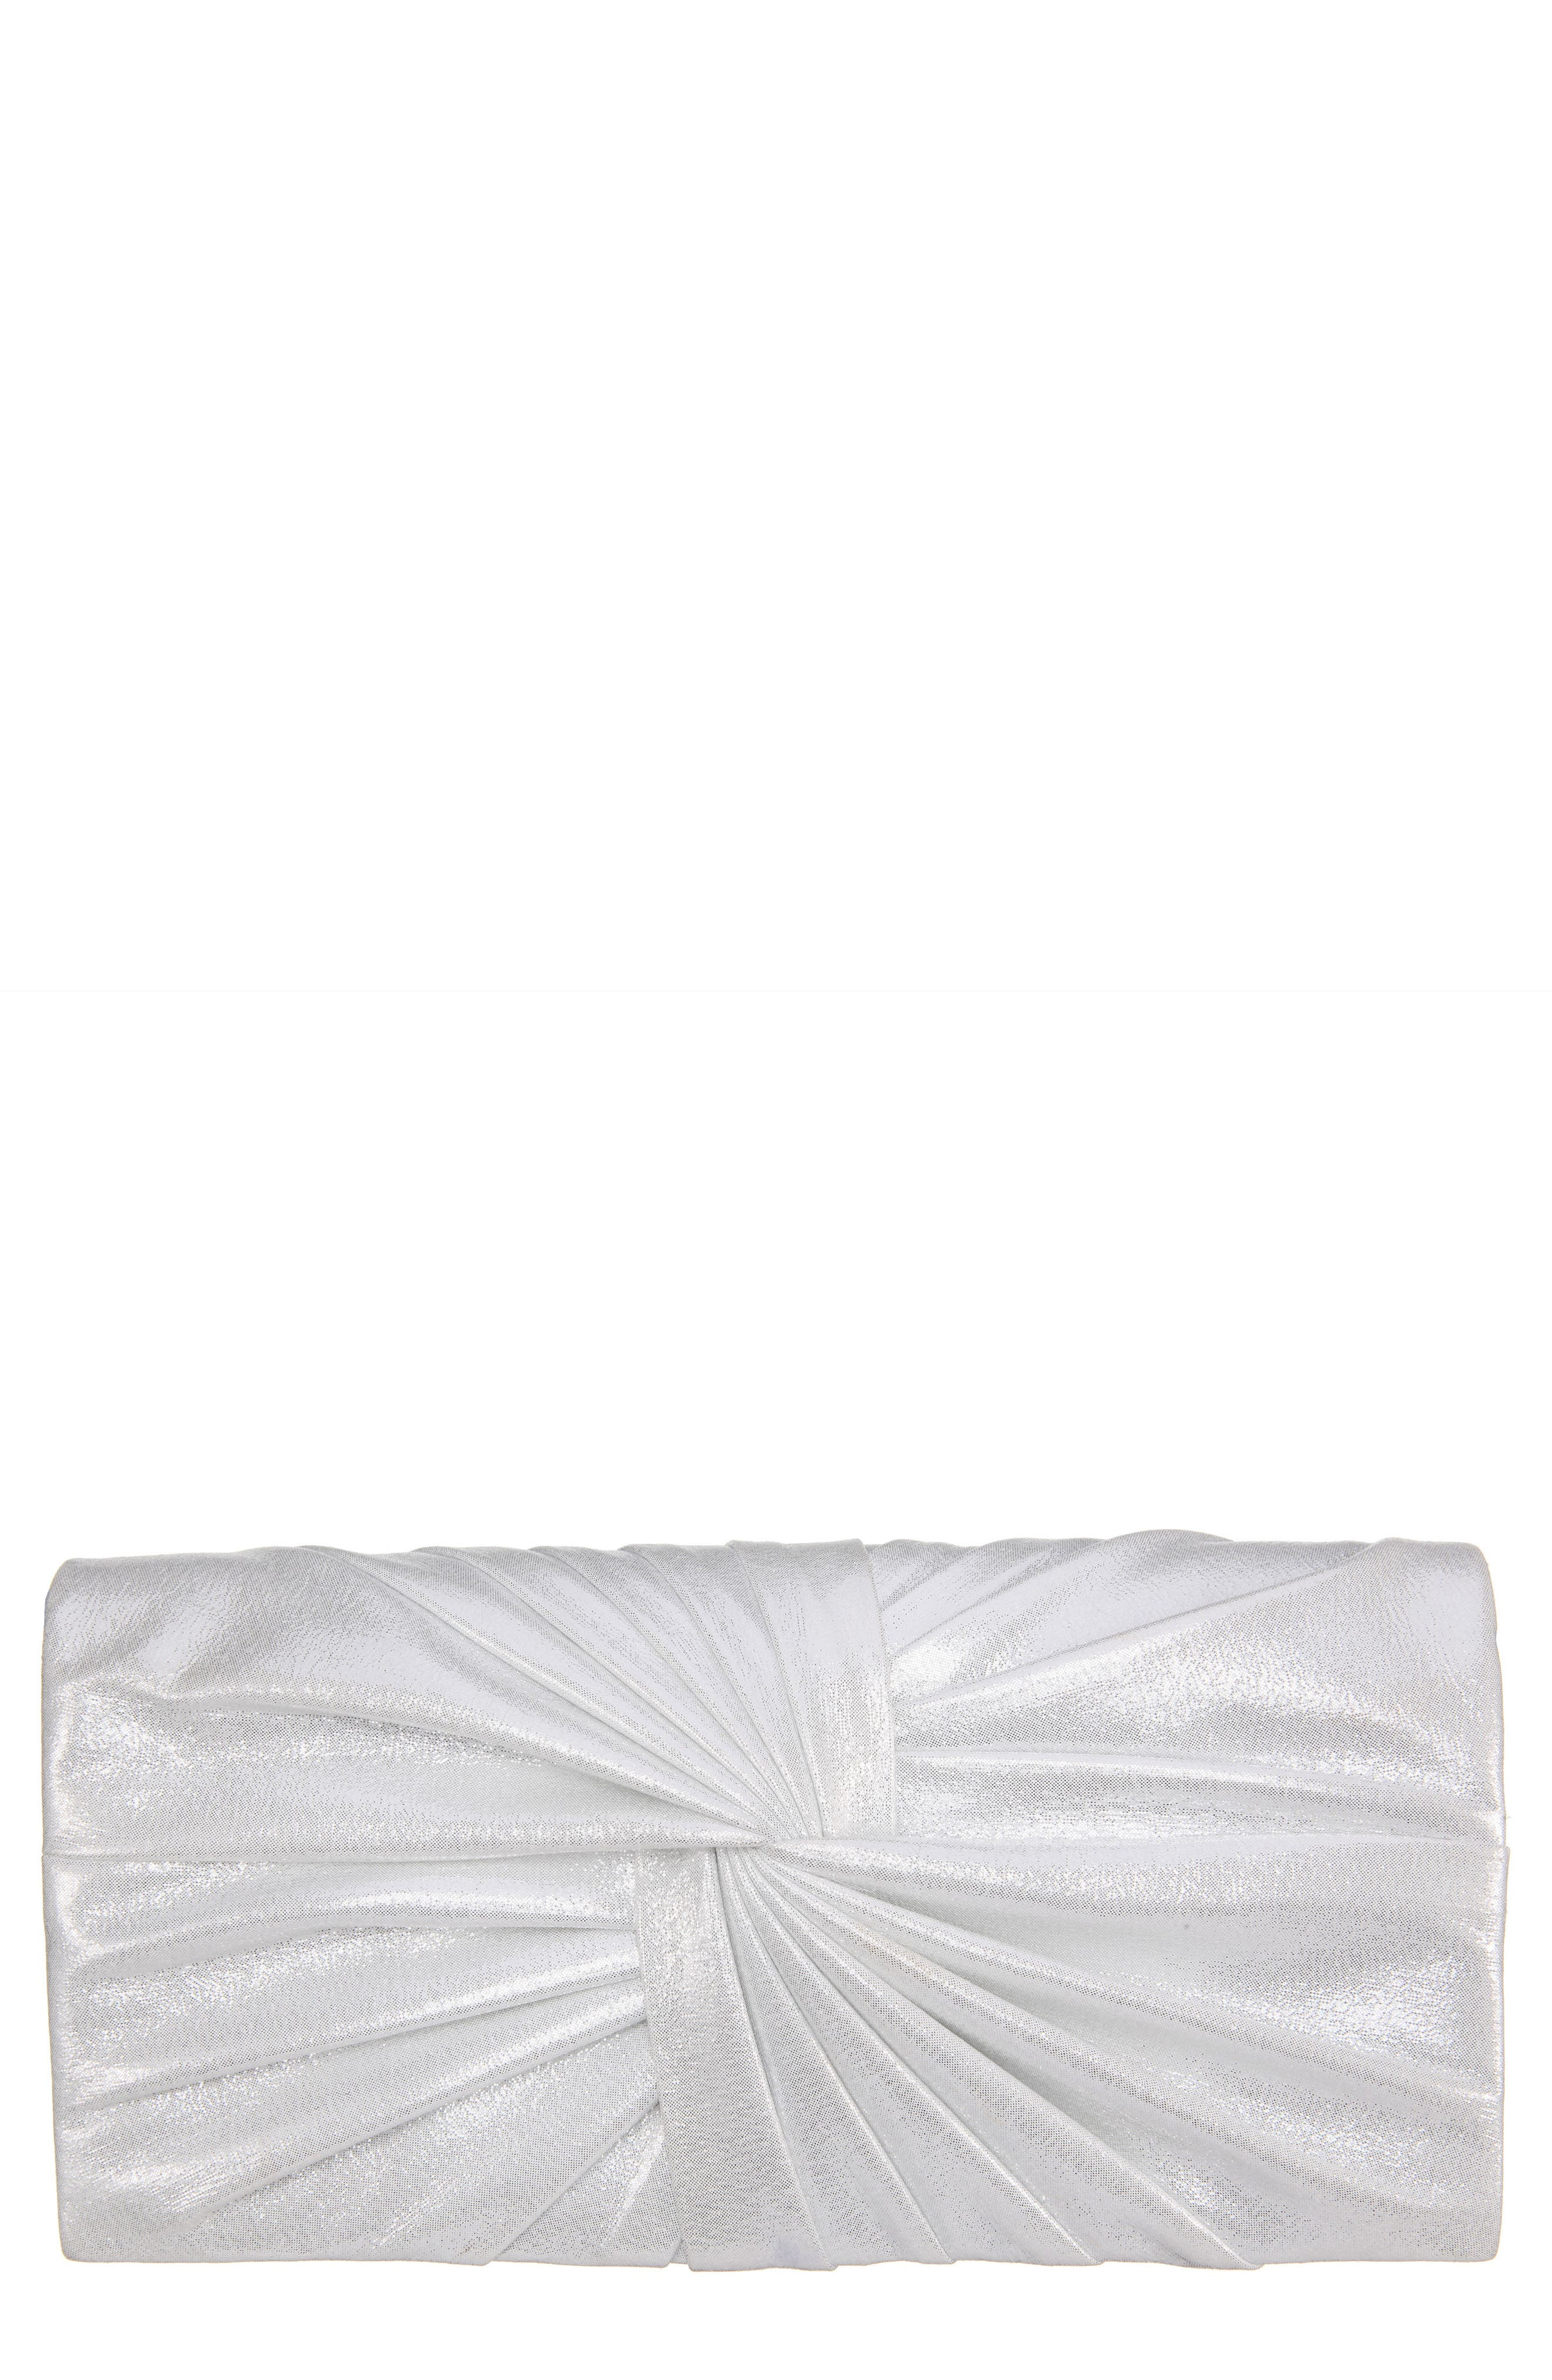 Durham Twisted Knot Clutch,                             Main thumbnail 1, color,                             LT SILVER